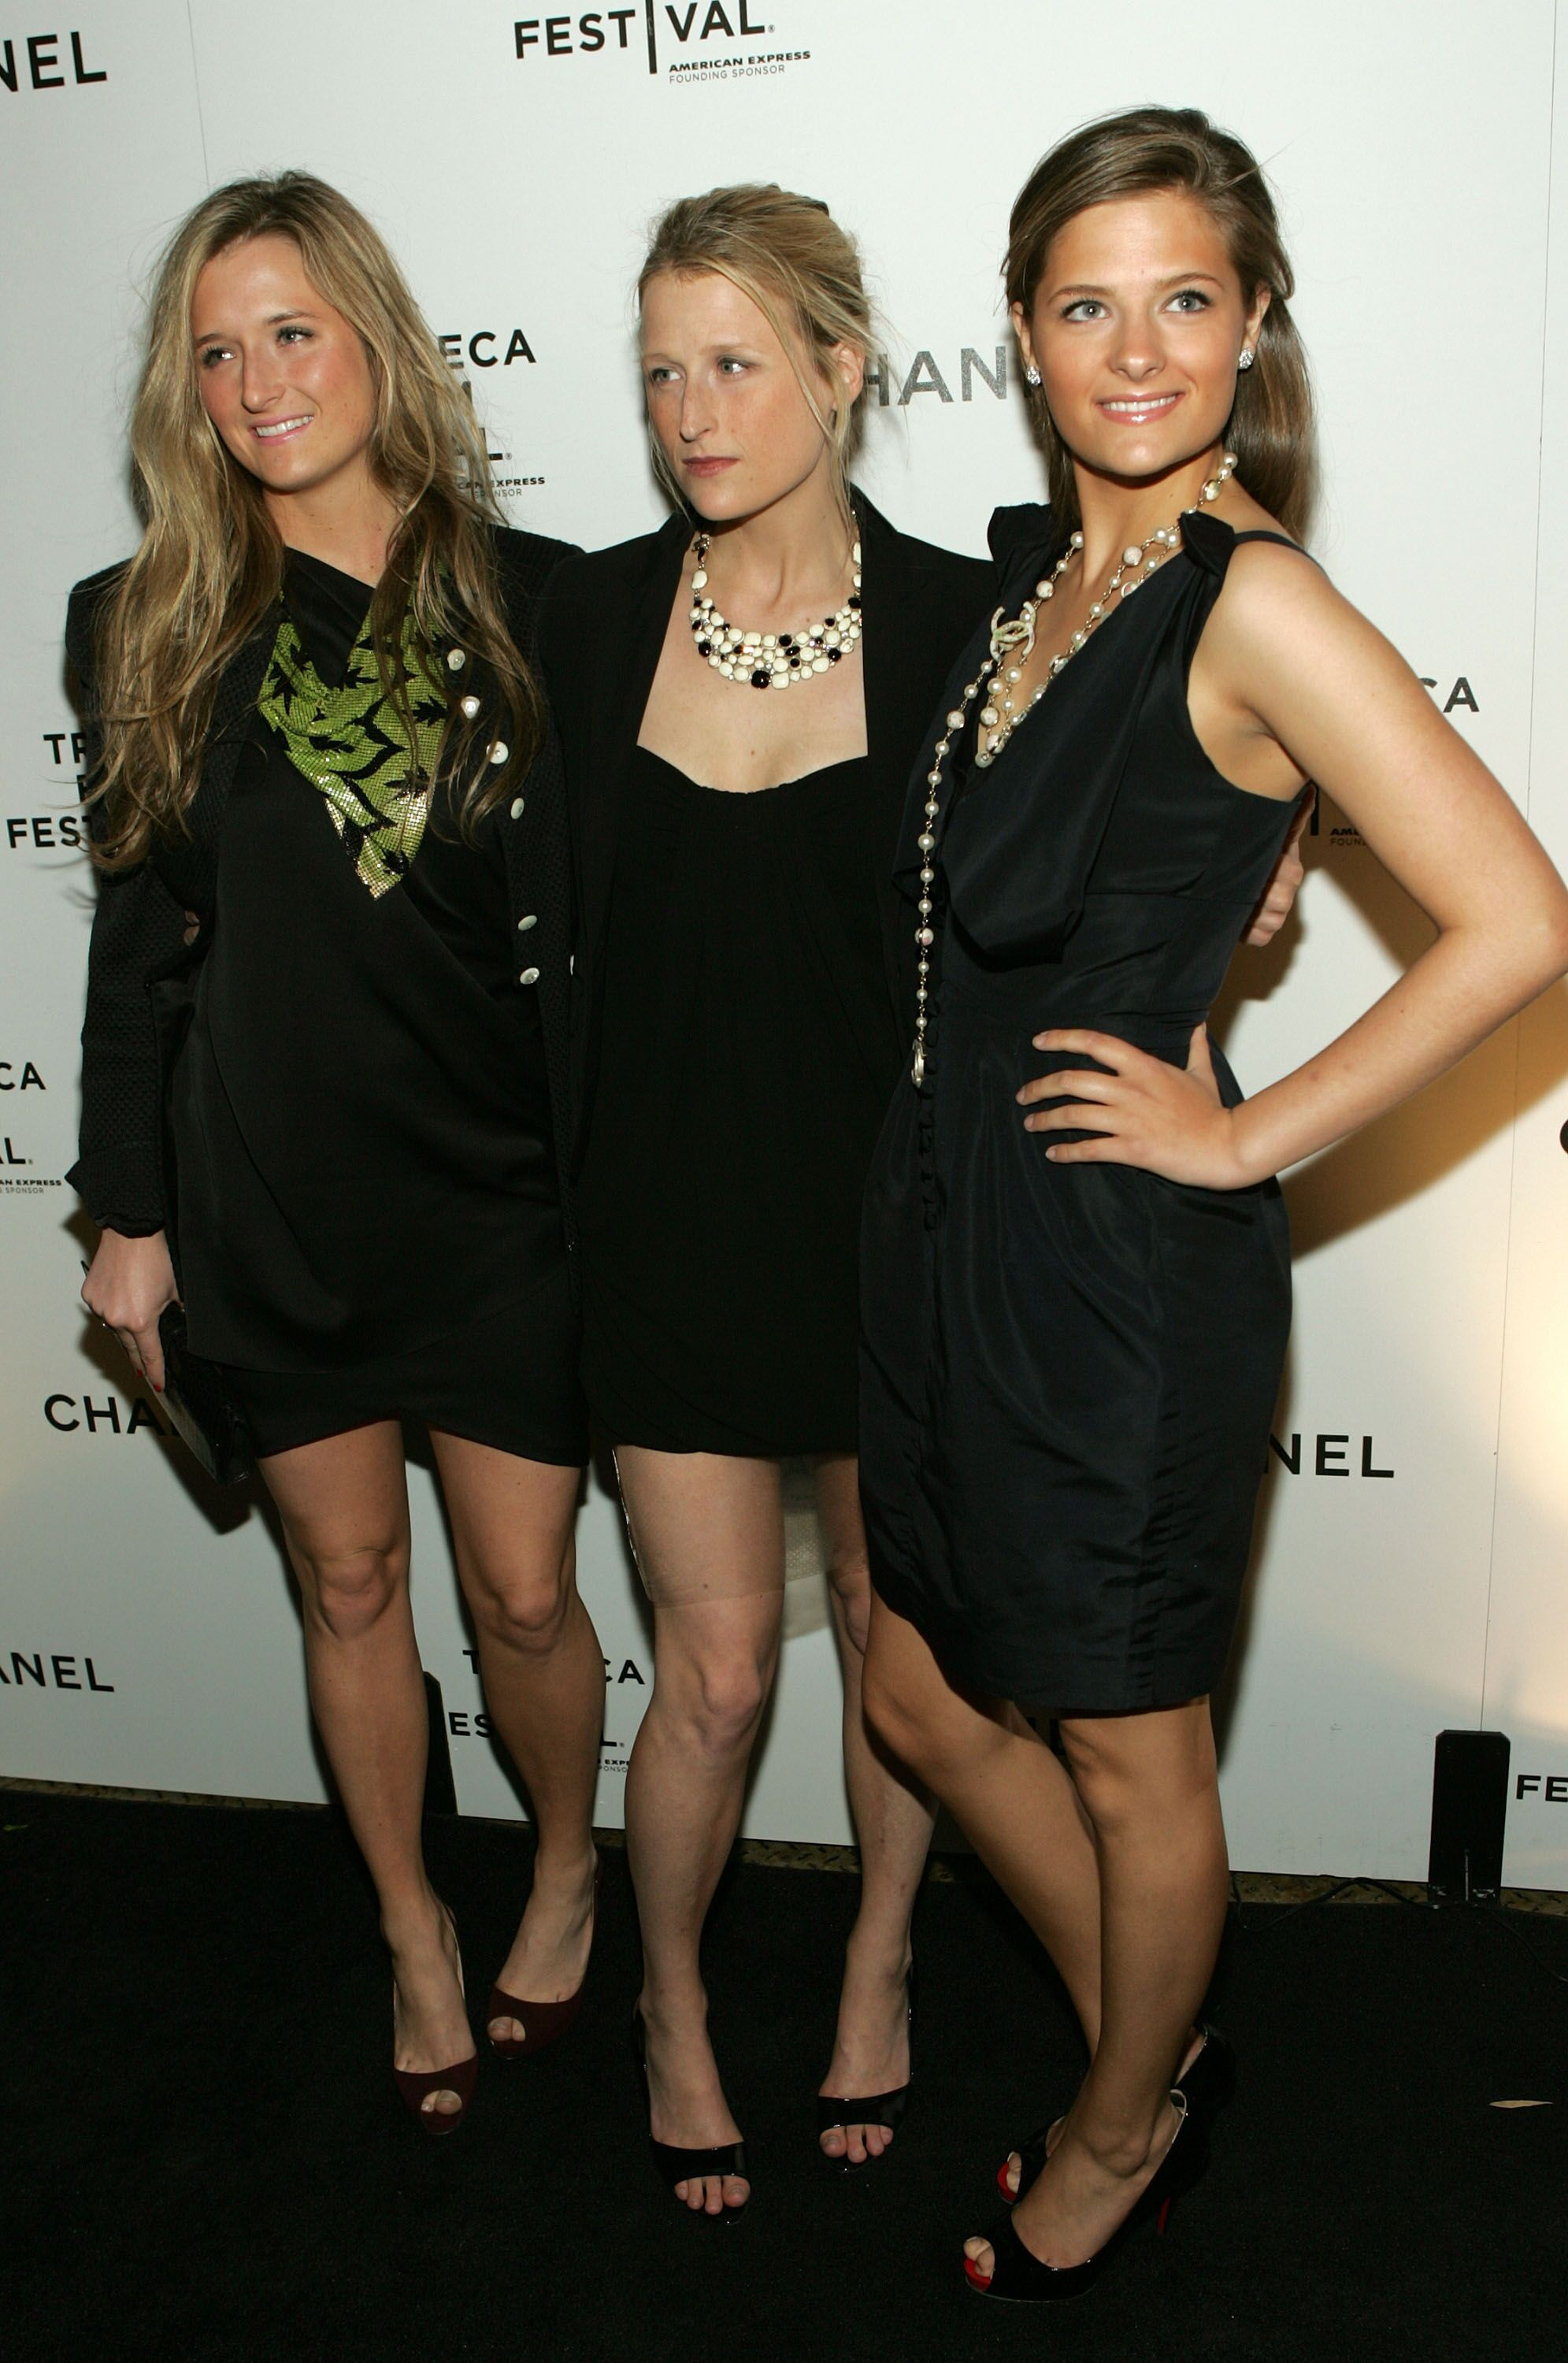 Grace Gummer, Mamie Gummer, and Louisa Gummer attend the Chanel and Tribeca Film Festival.   Source: Getty Images